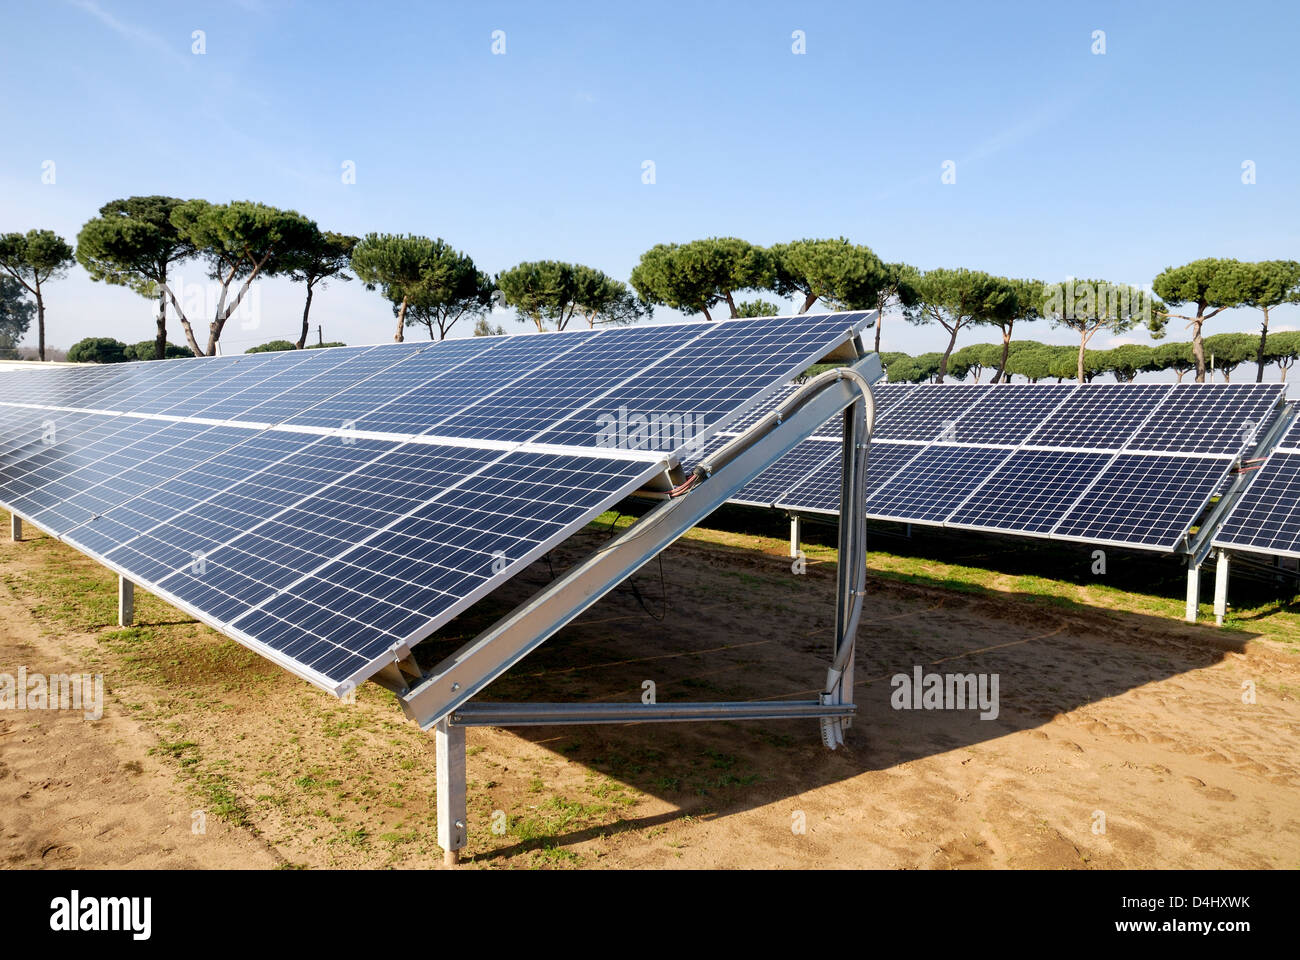 Photovoltaic panels - Stock Image